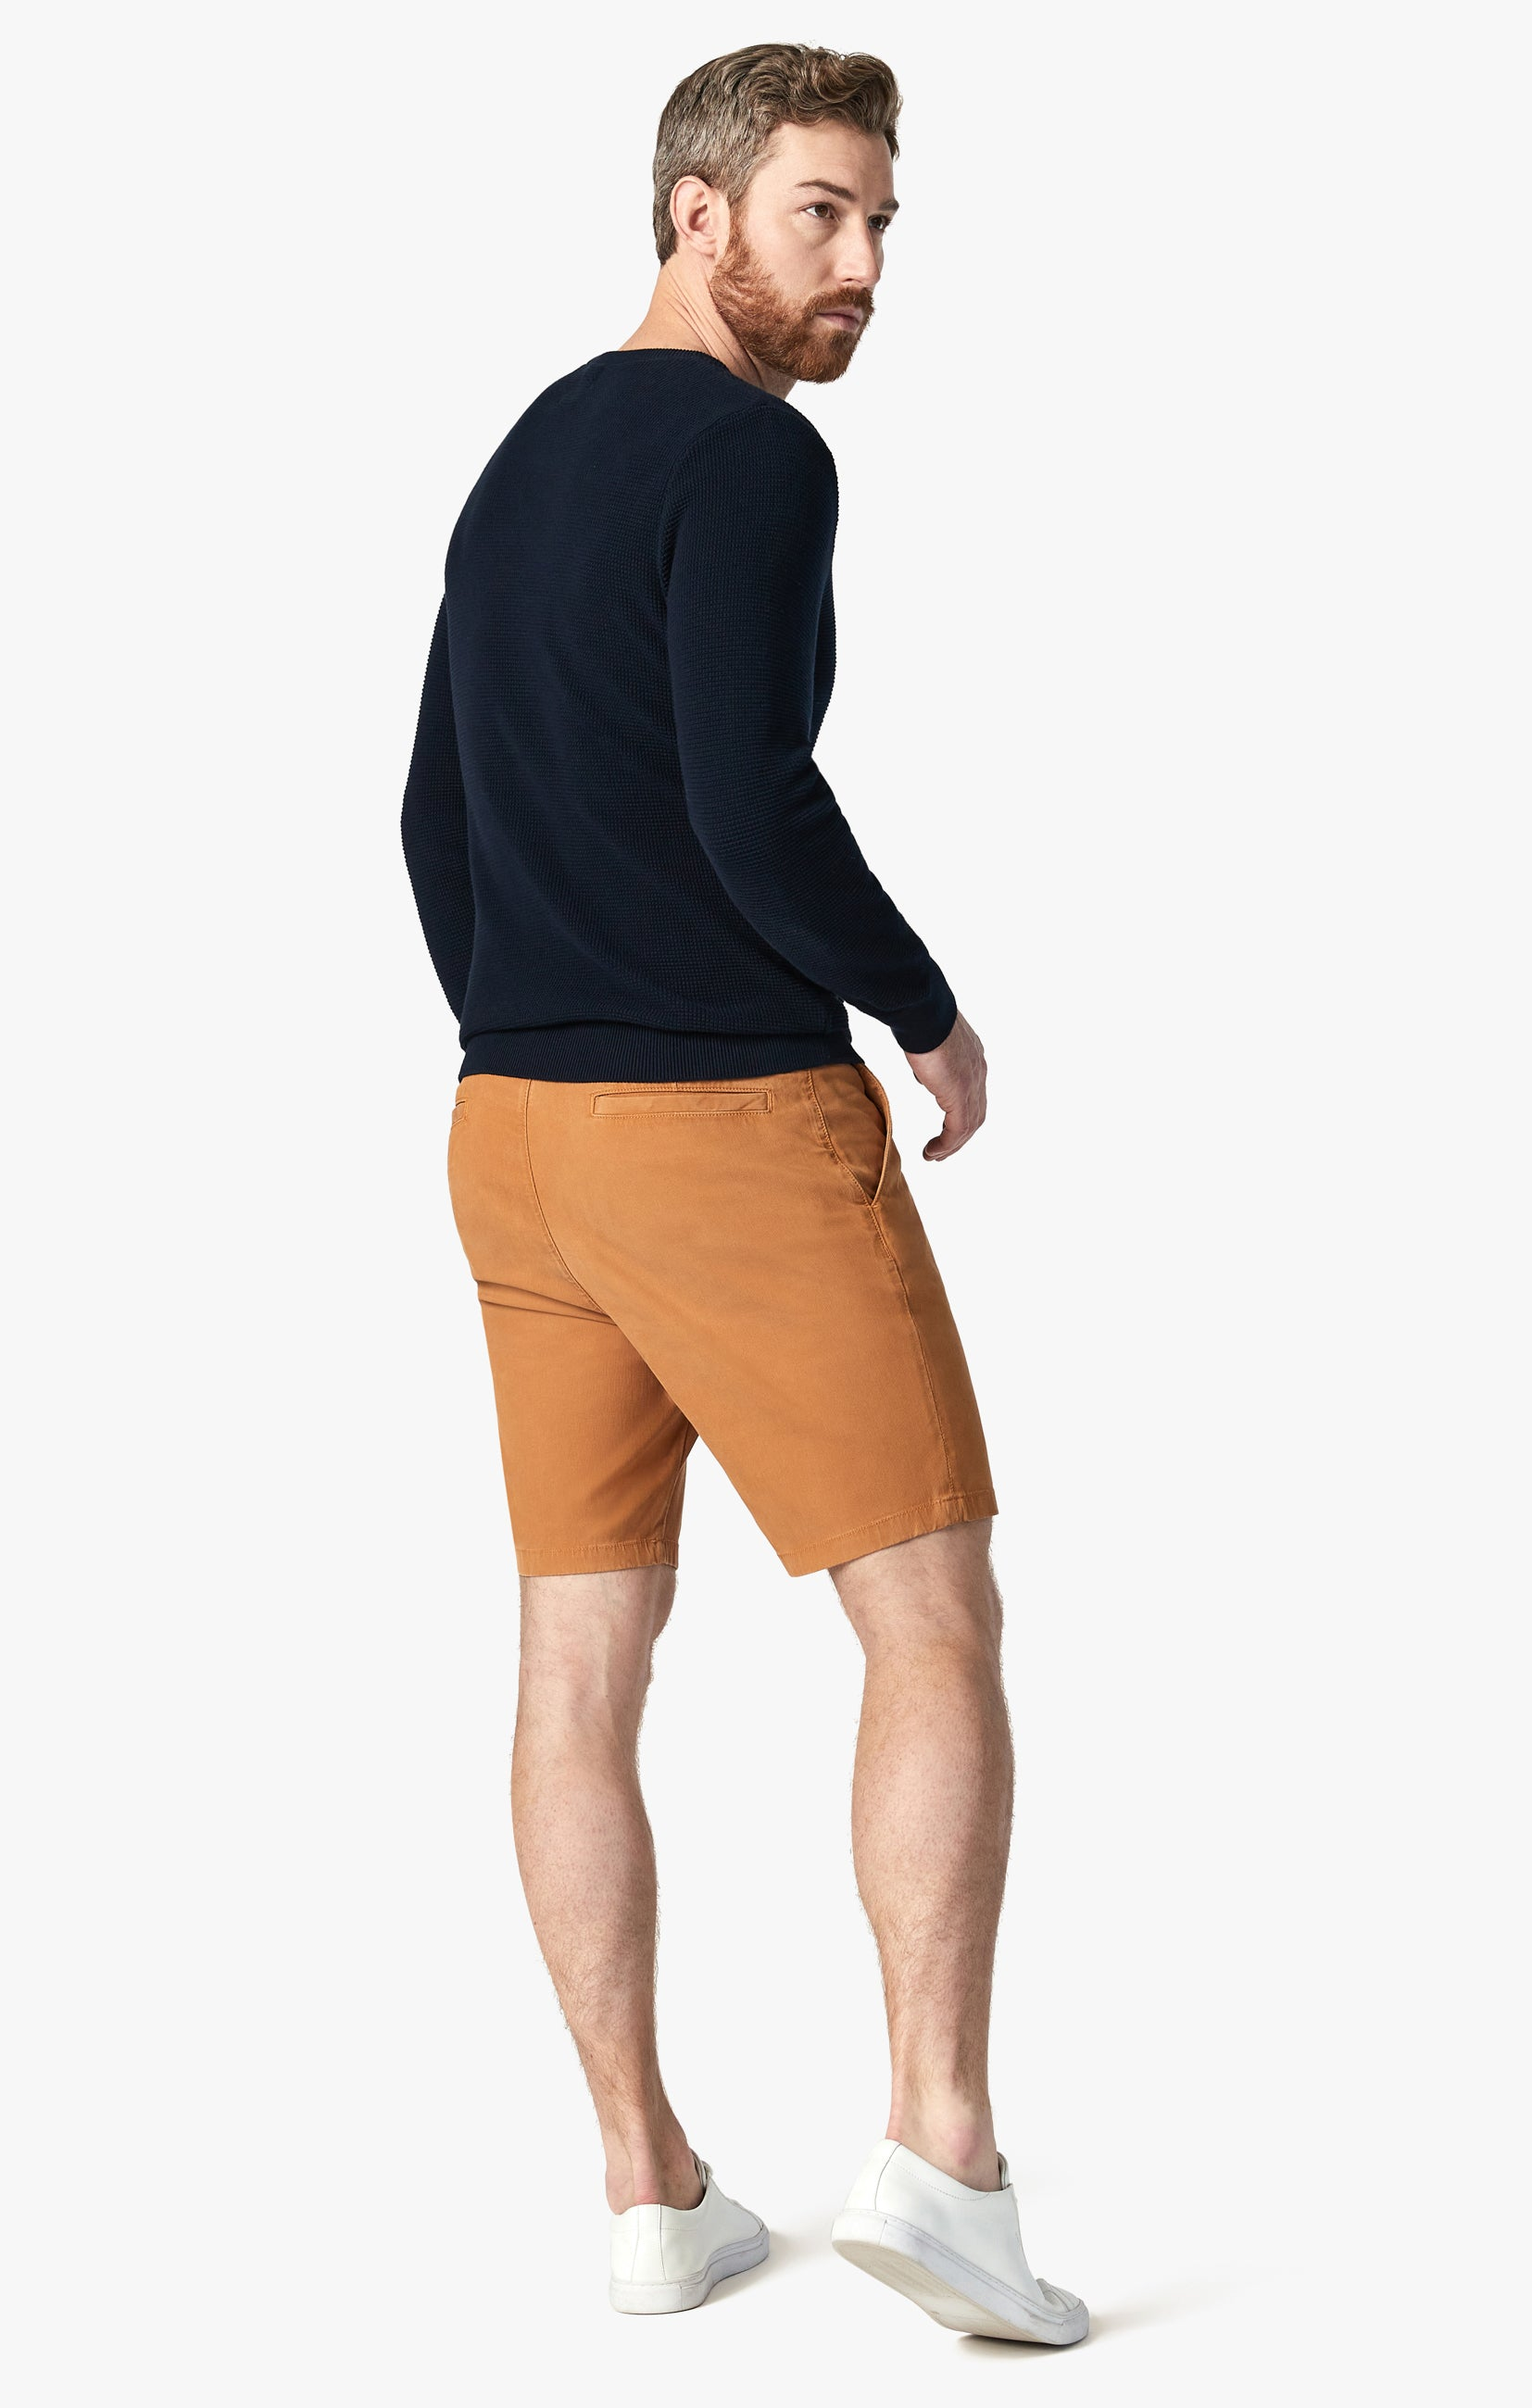 Arizona Shorts in Brown Sugar Fine Touch Image 6